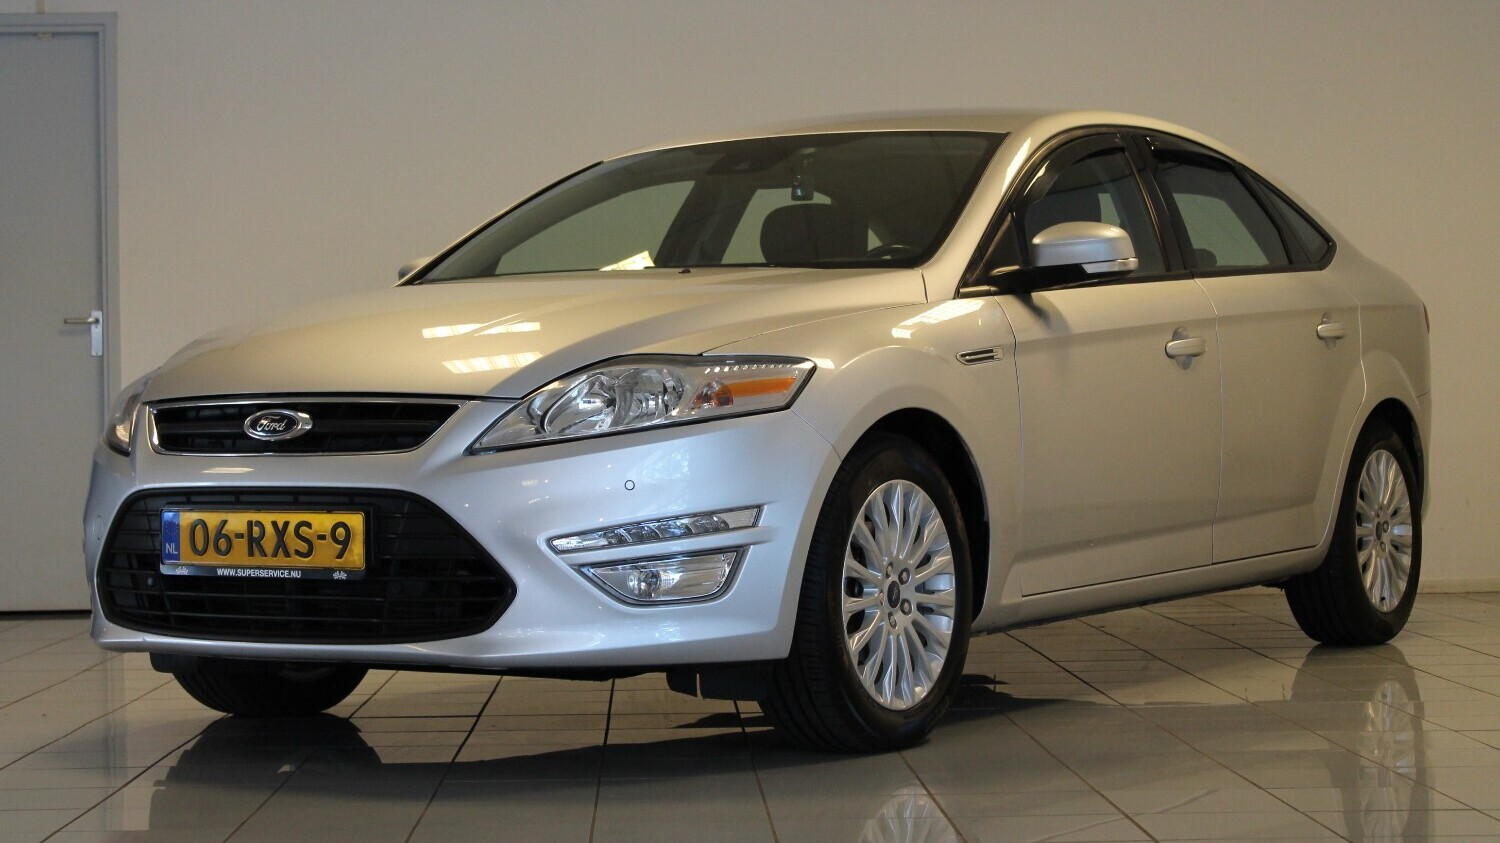 Ford Mondeo Hatchback 2011 06-RXS-9 1